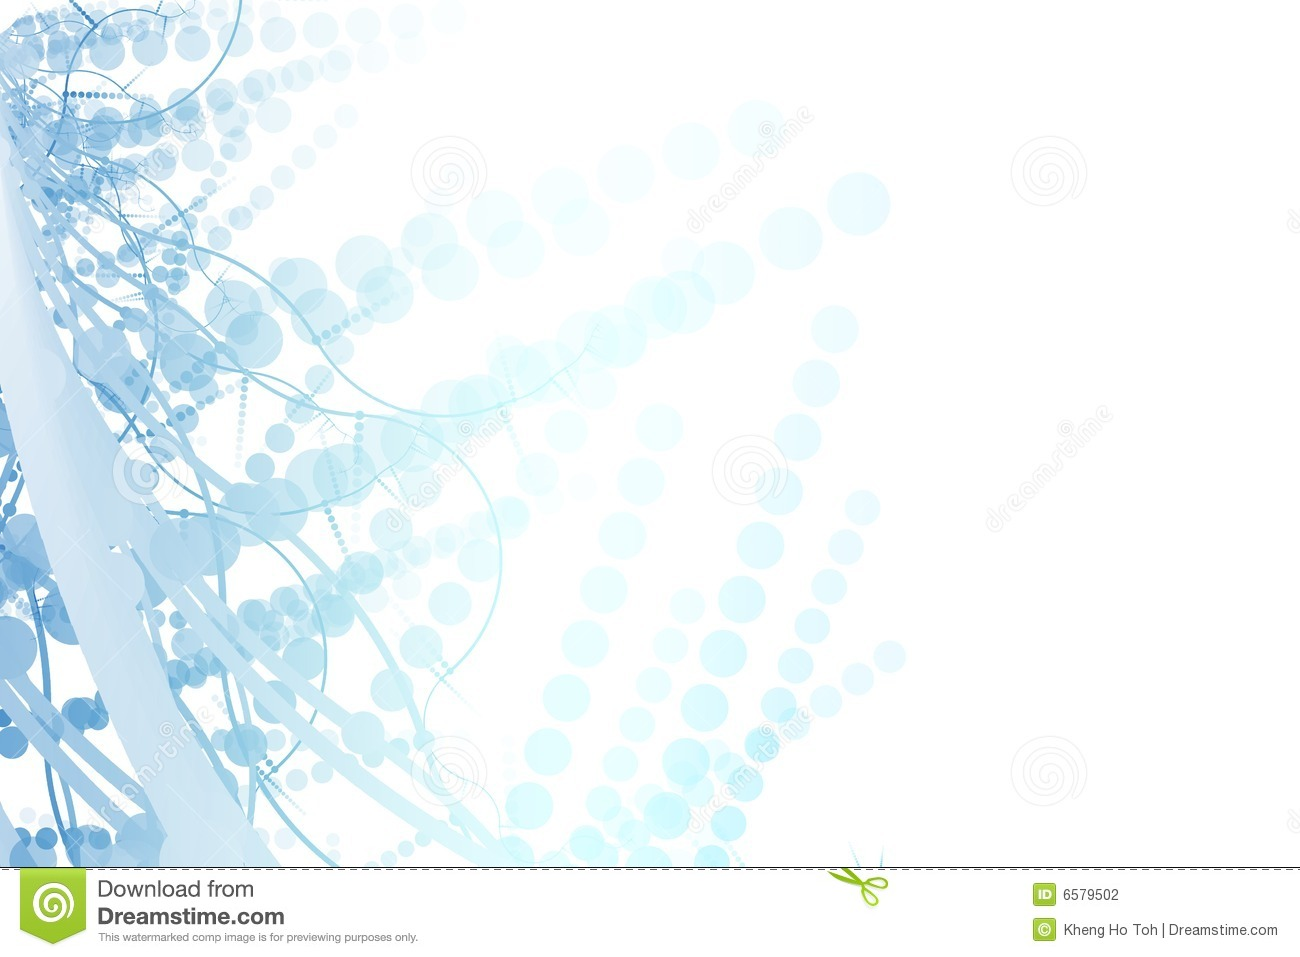 blue fun template abstract billboard background stock illustration